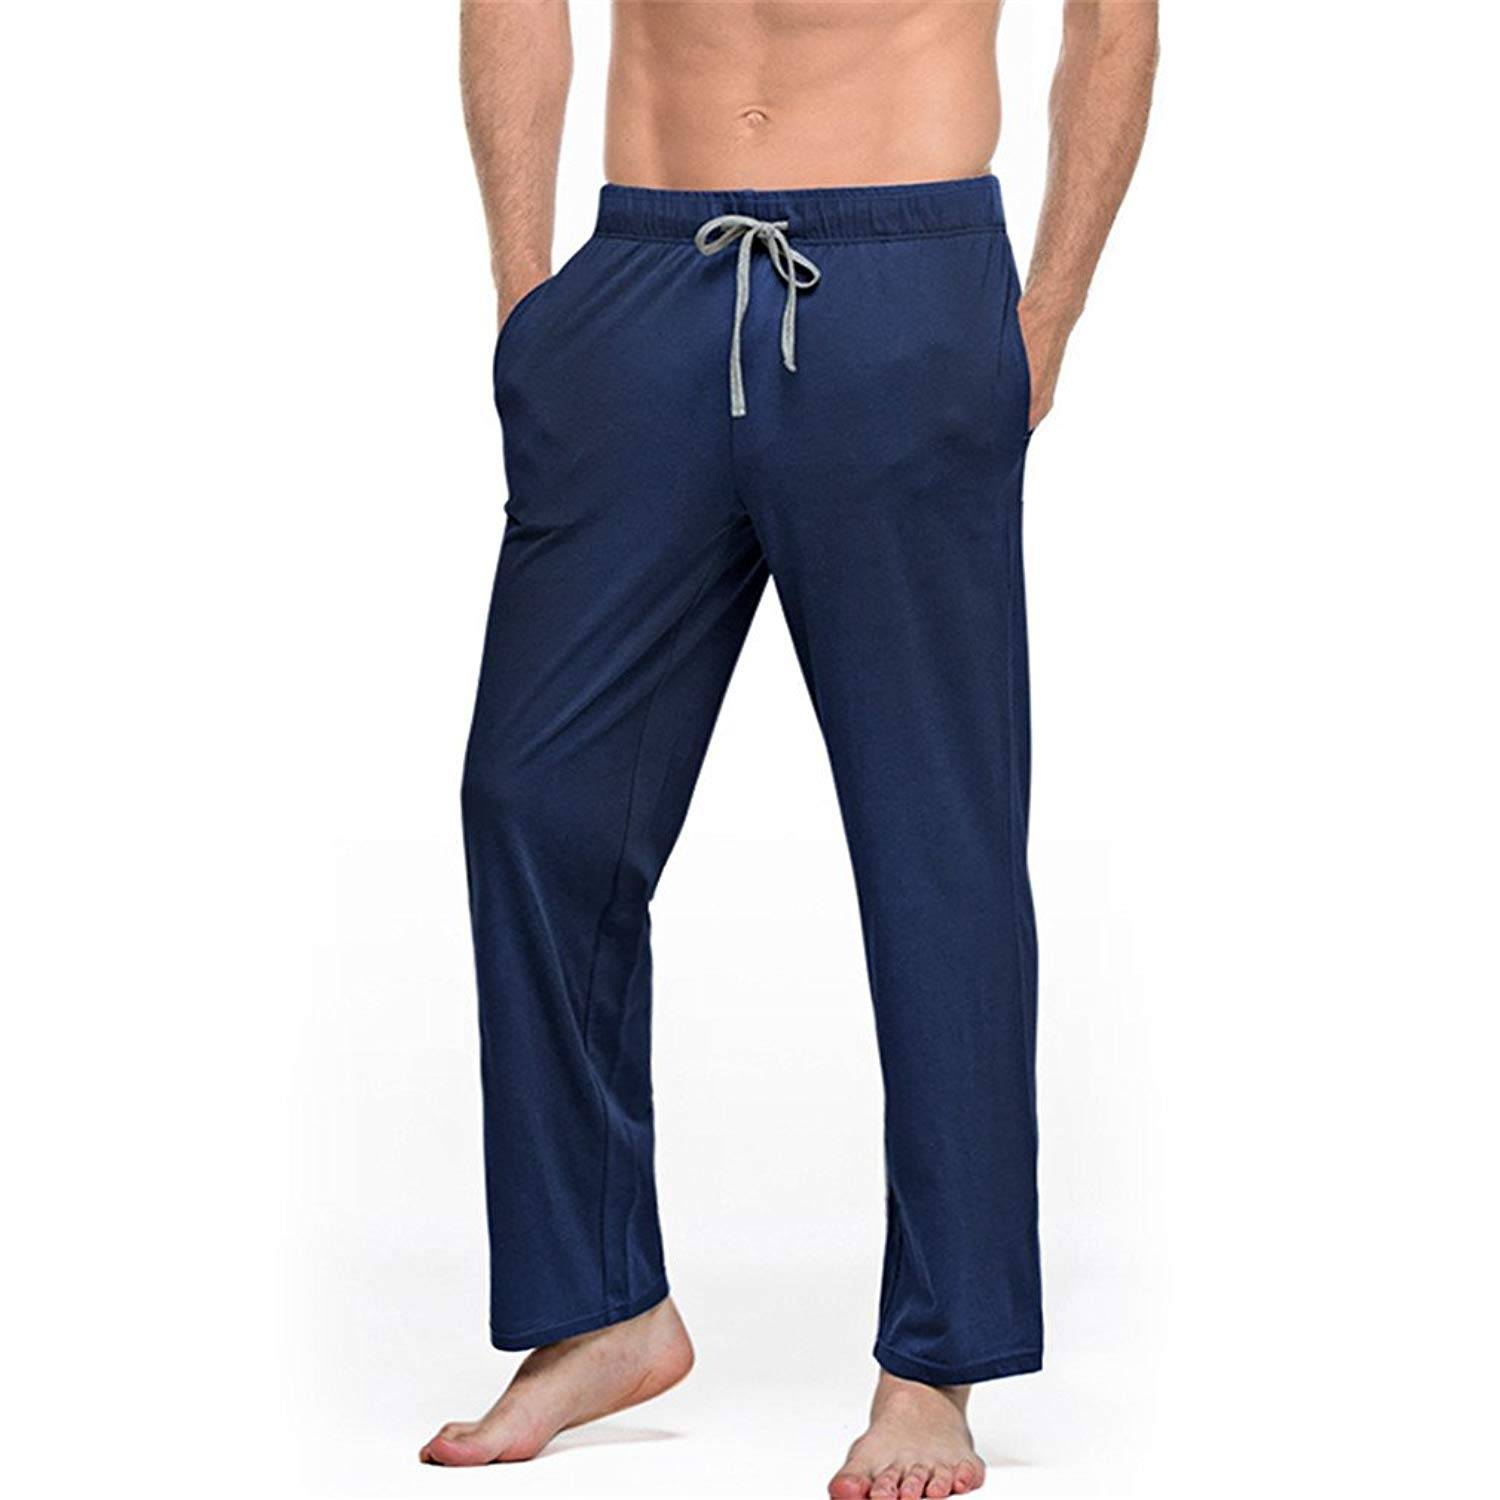 7299f5e926a5 Get Quotations · XIANGYANG Mens Cotton Sleep Bottoms String Loose Pijamas  Pants Breathable Lounge Pants